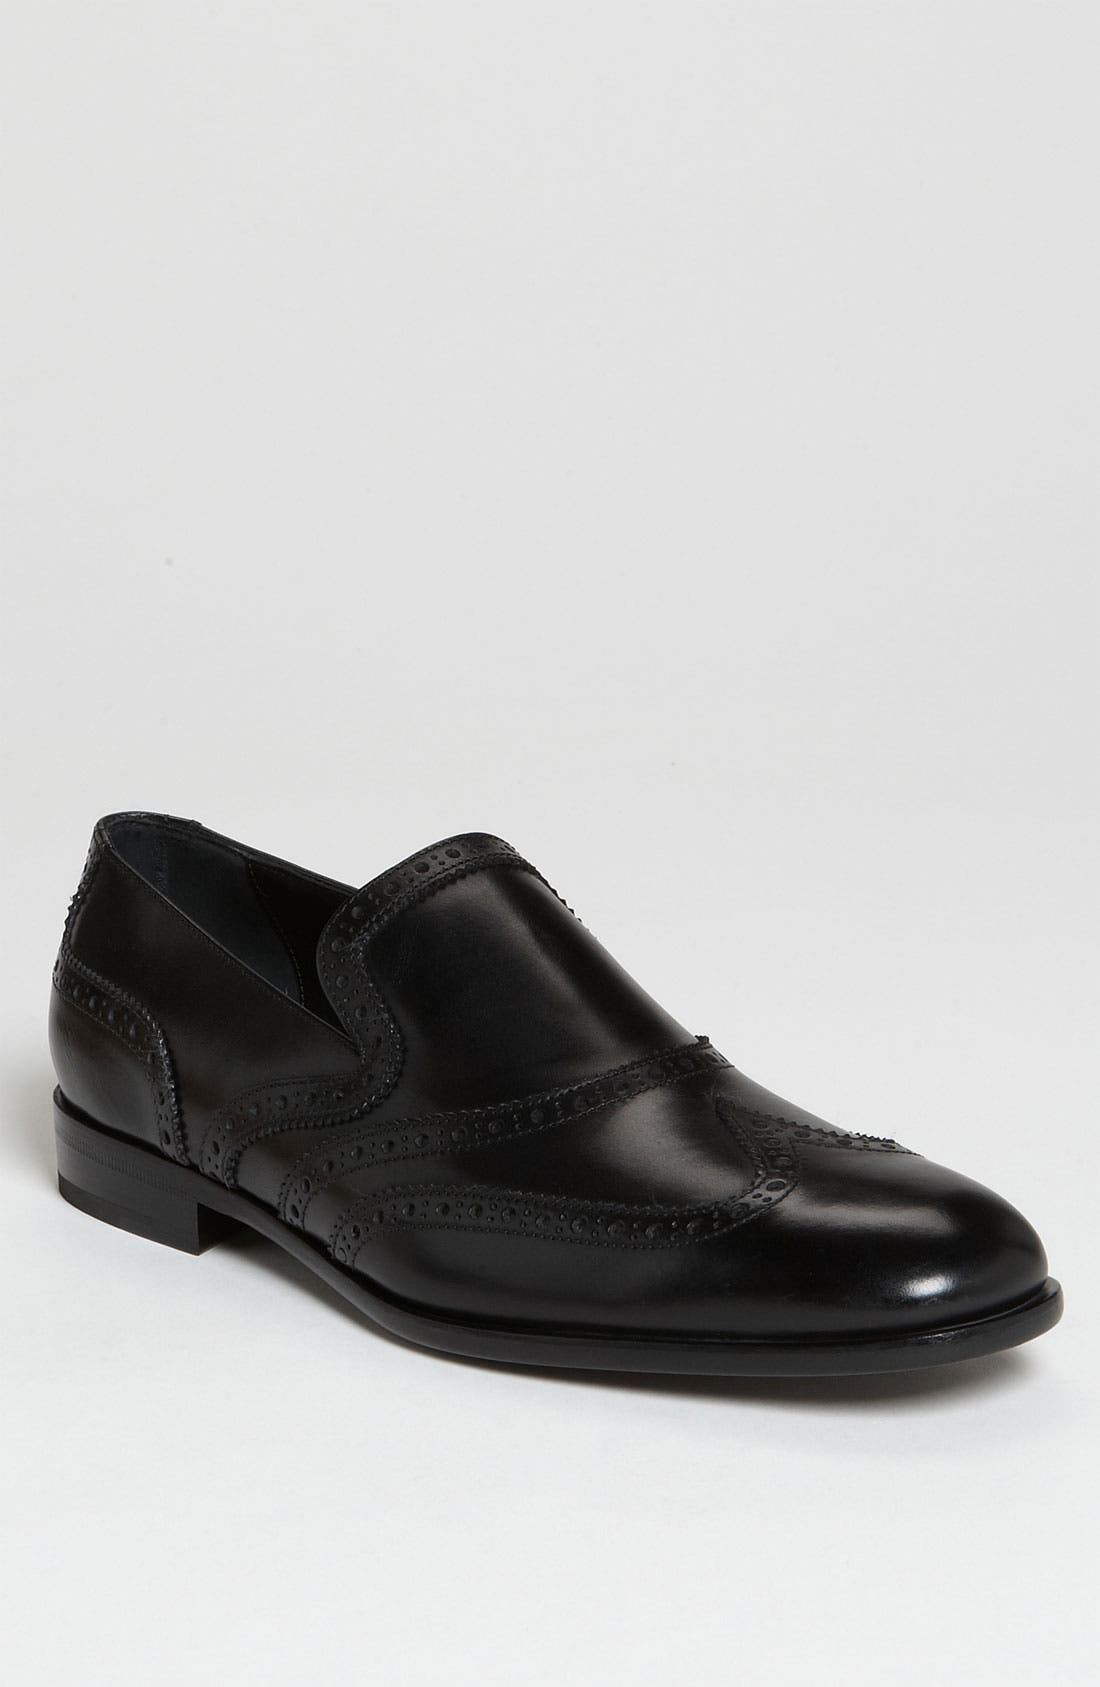 Alternate Image 1 Selected - Salvatore Ferragamo 'Beltramo 2' Loafer